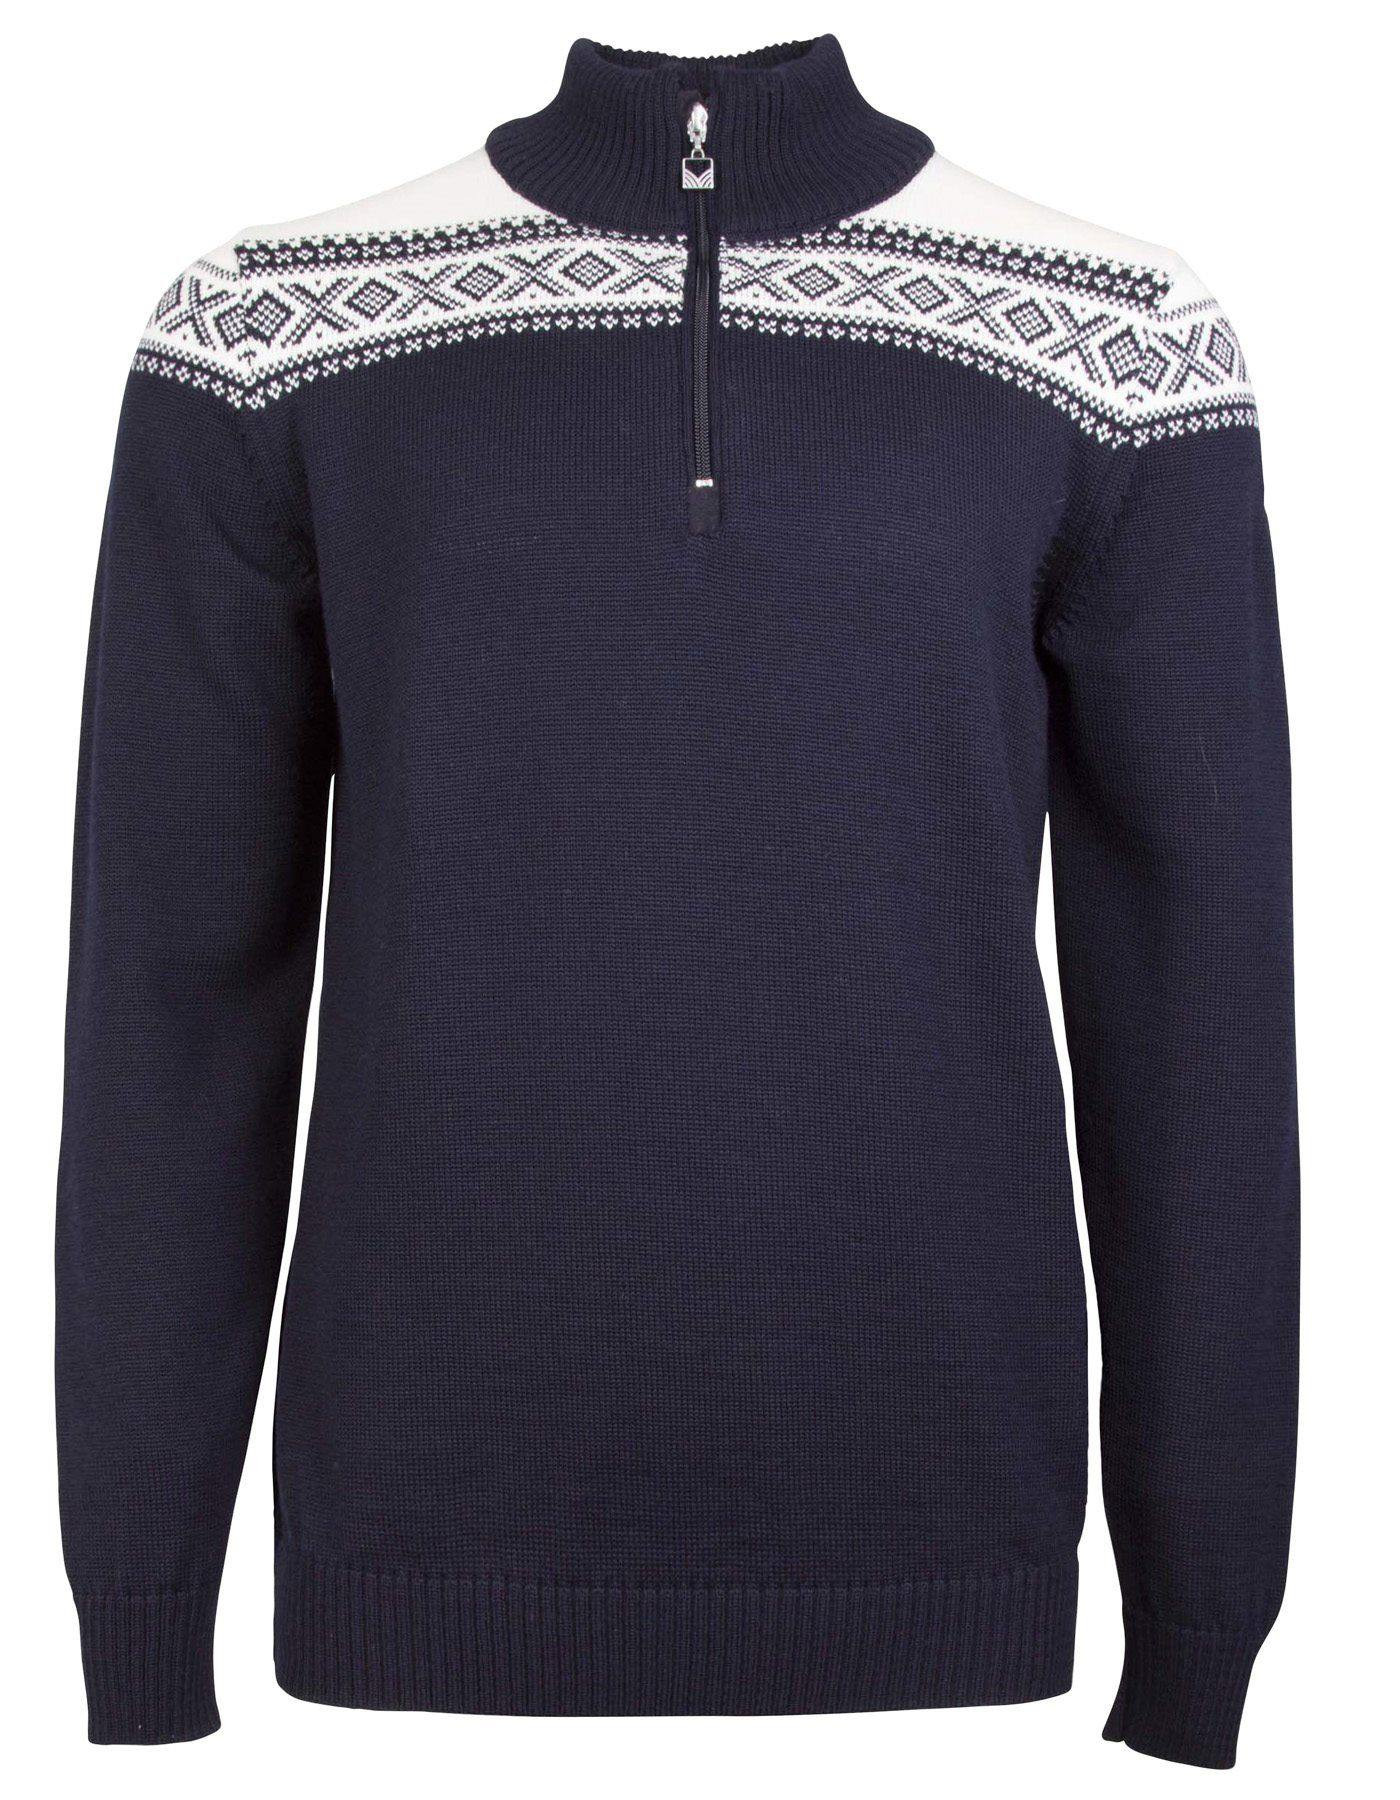 Cortina Merino Masculine Sweater